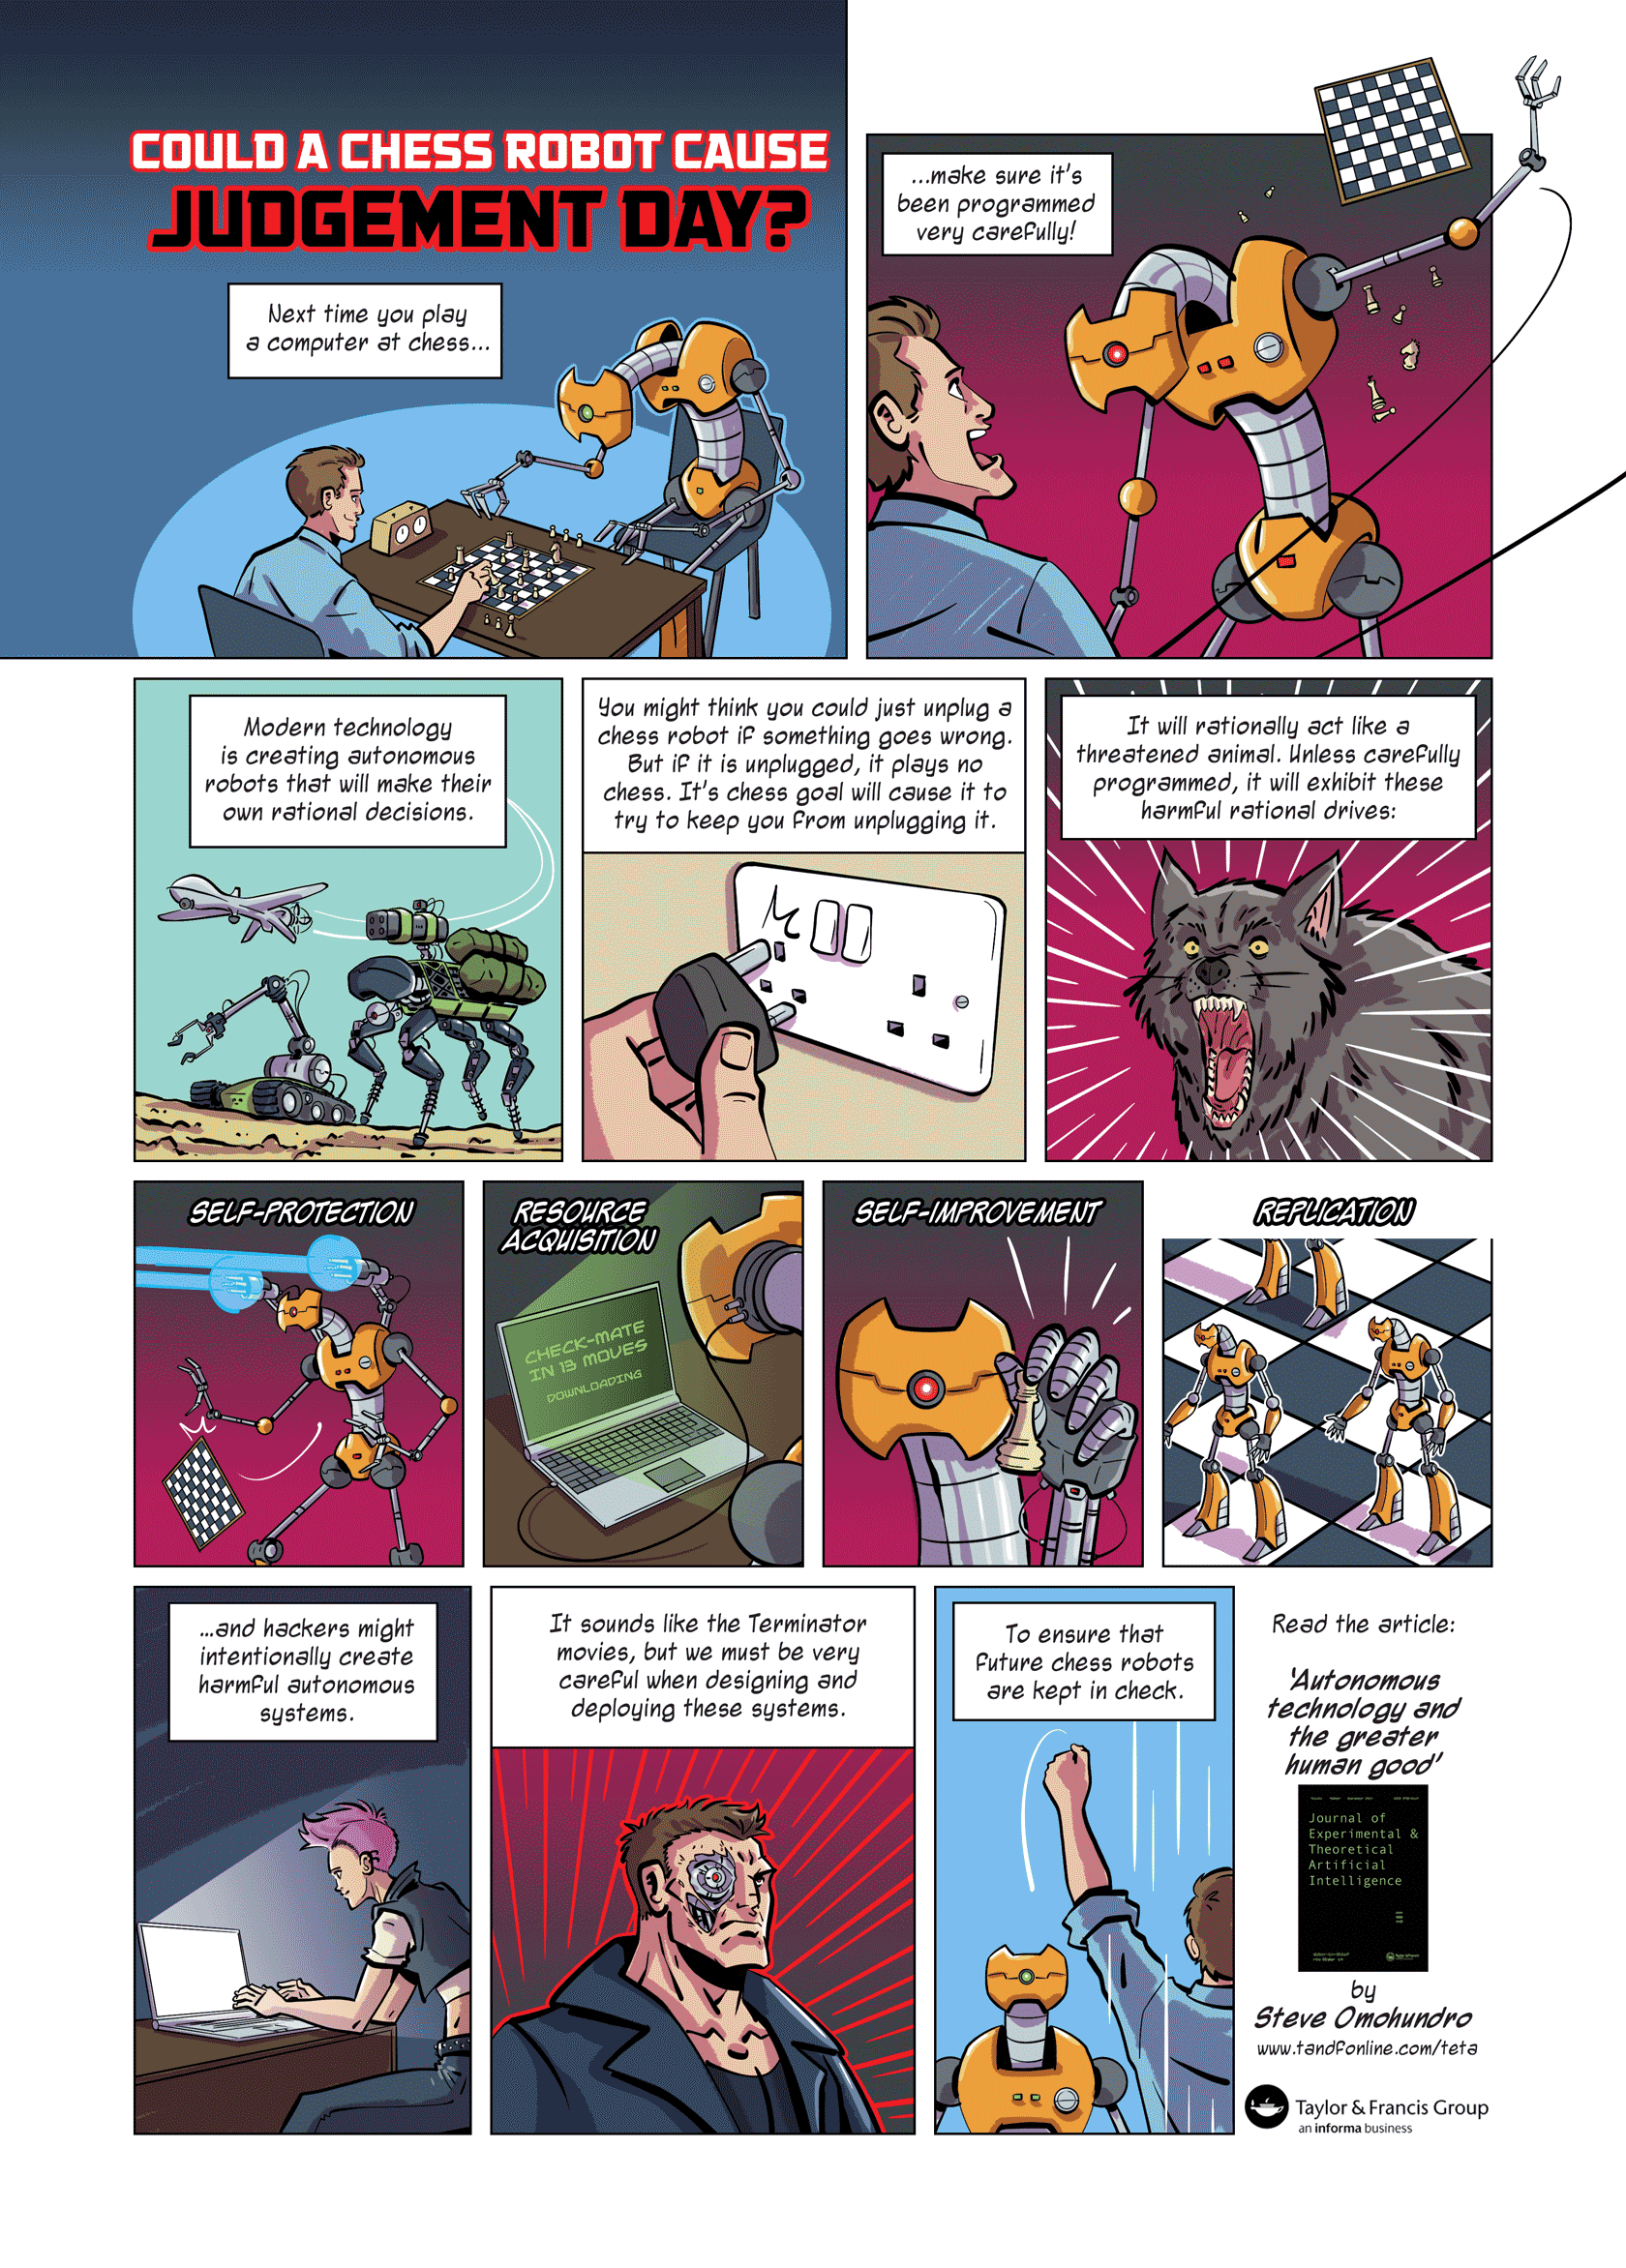 taylor francis comic strip could a chess robot cause judgement tf chess robots web